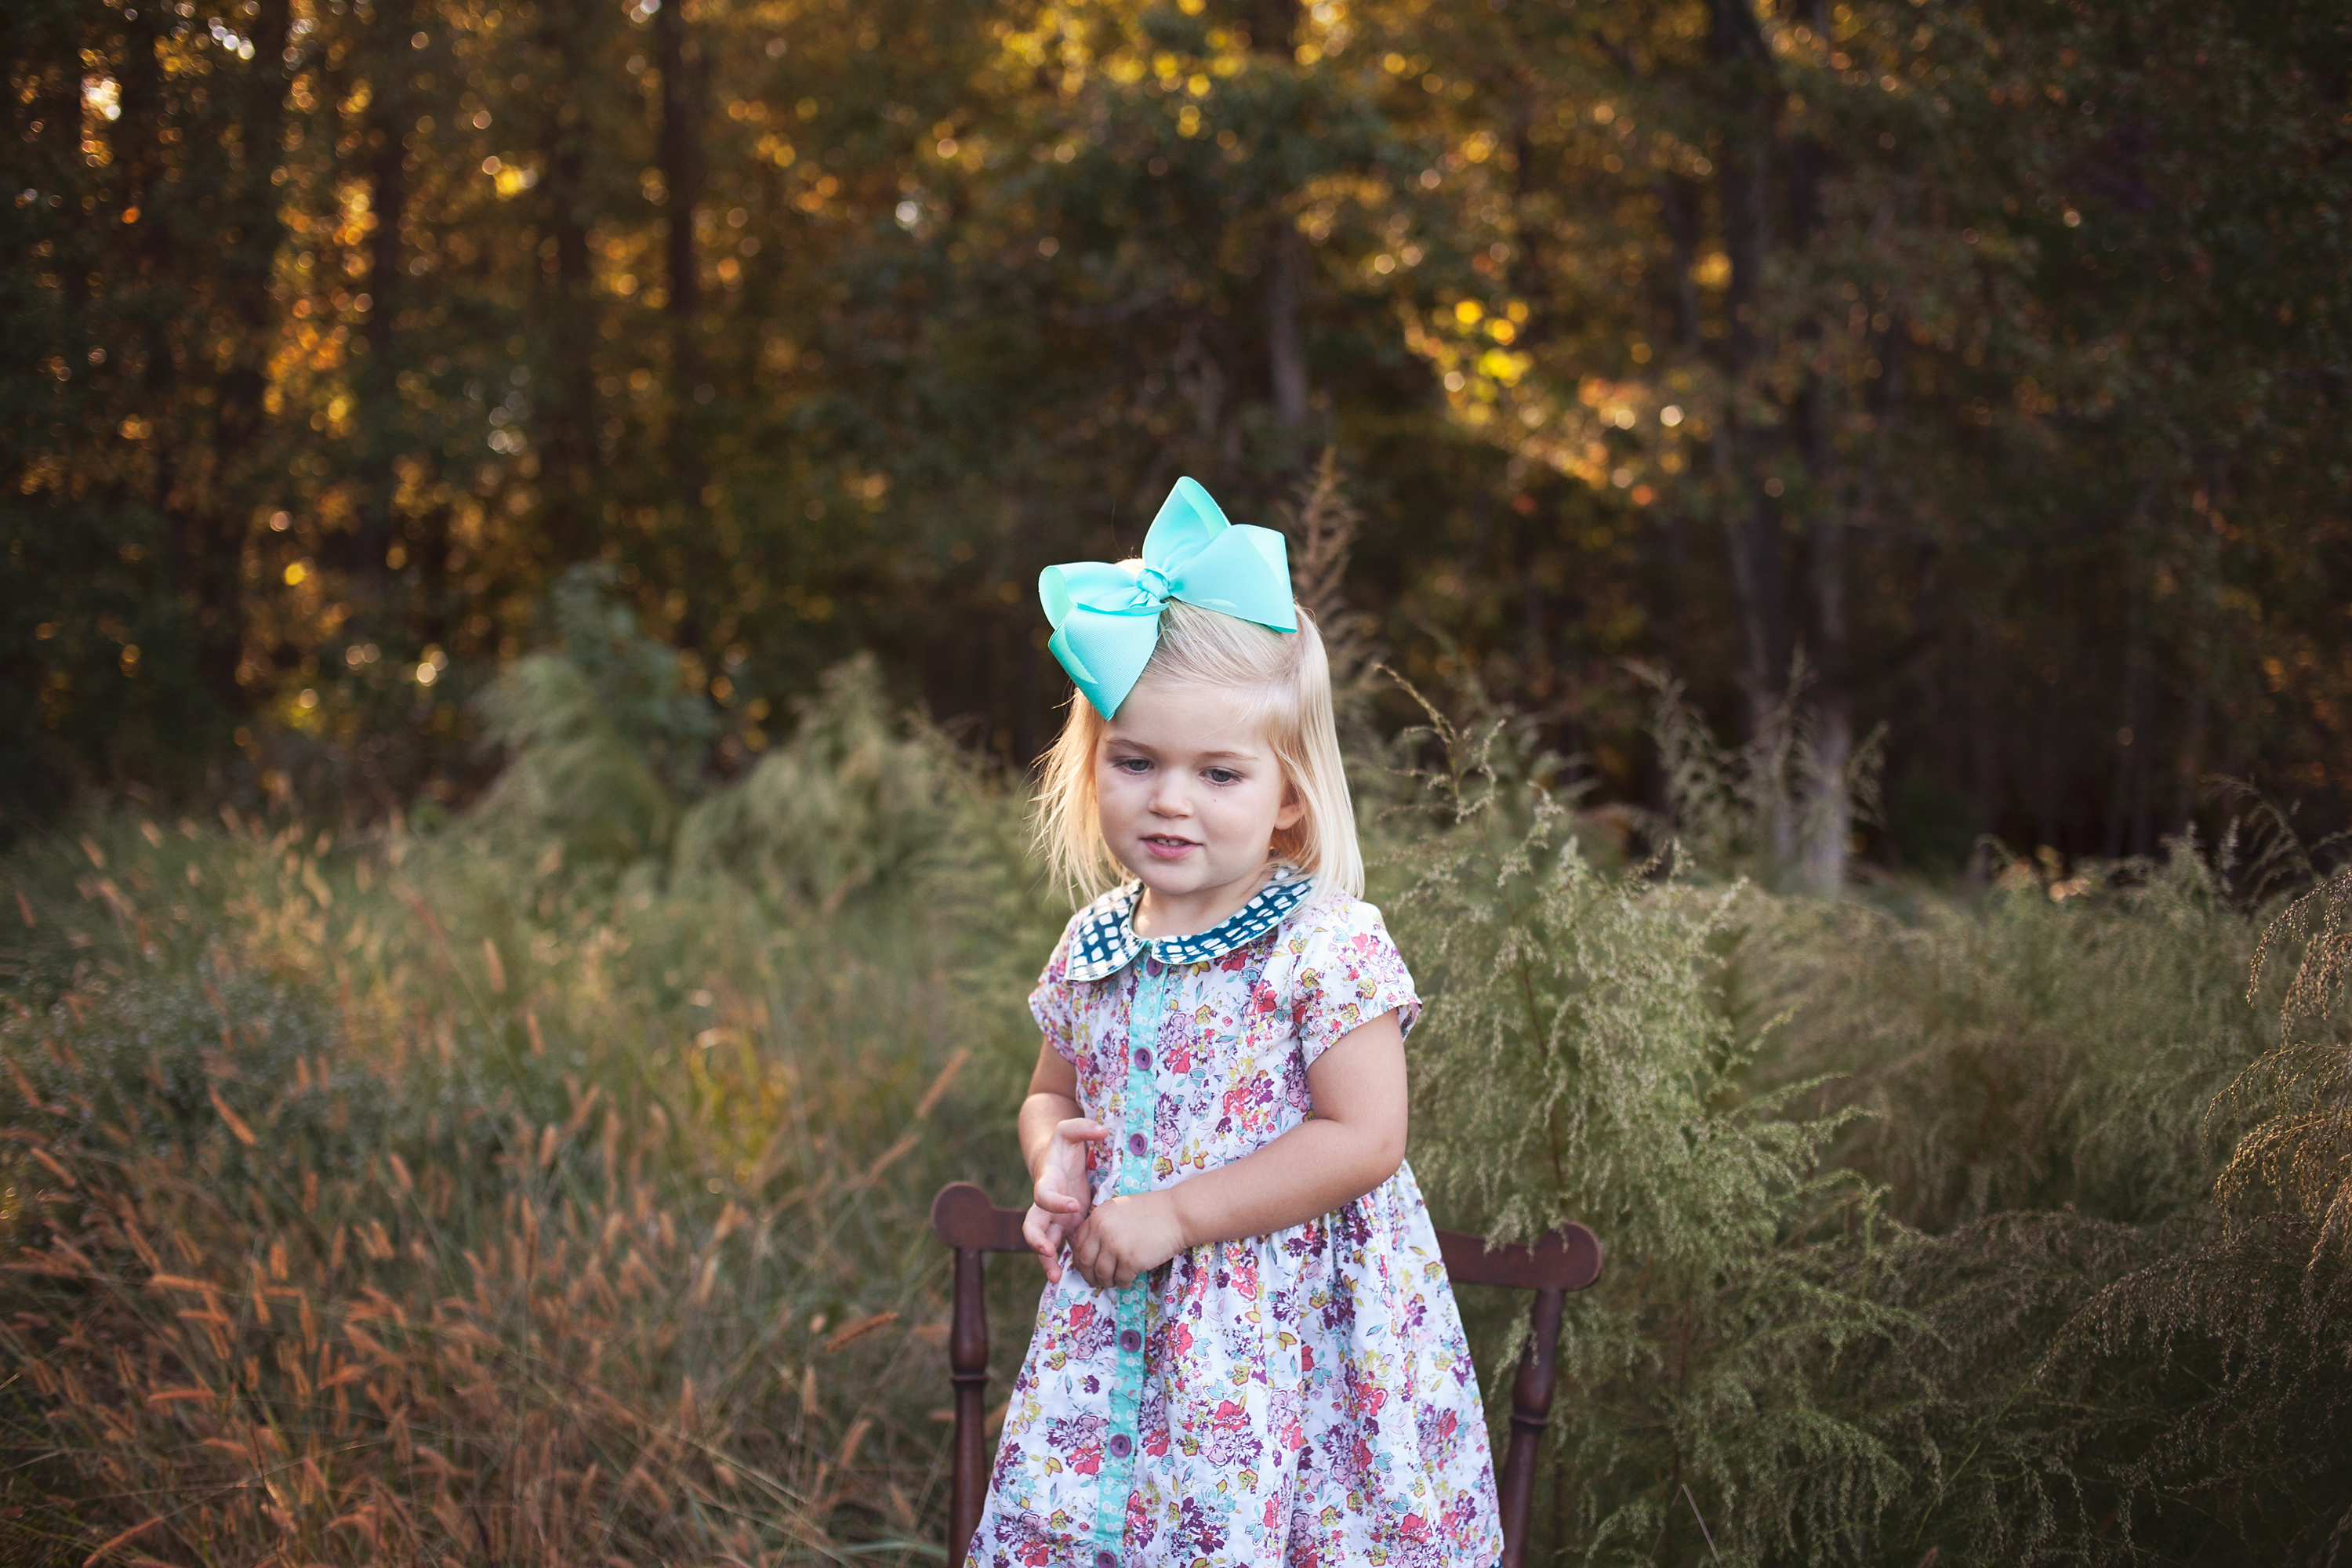 Erica-Mulford-Photography_286-copy